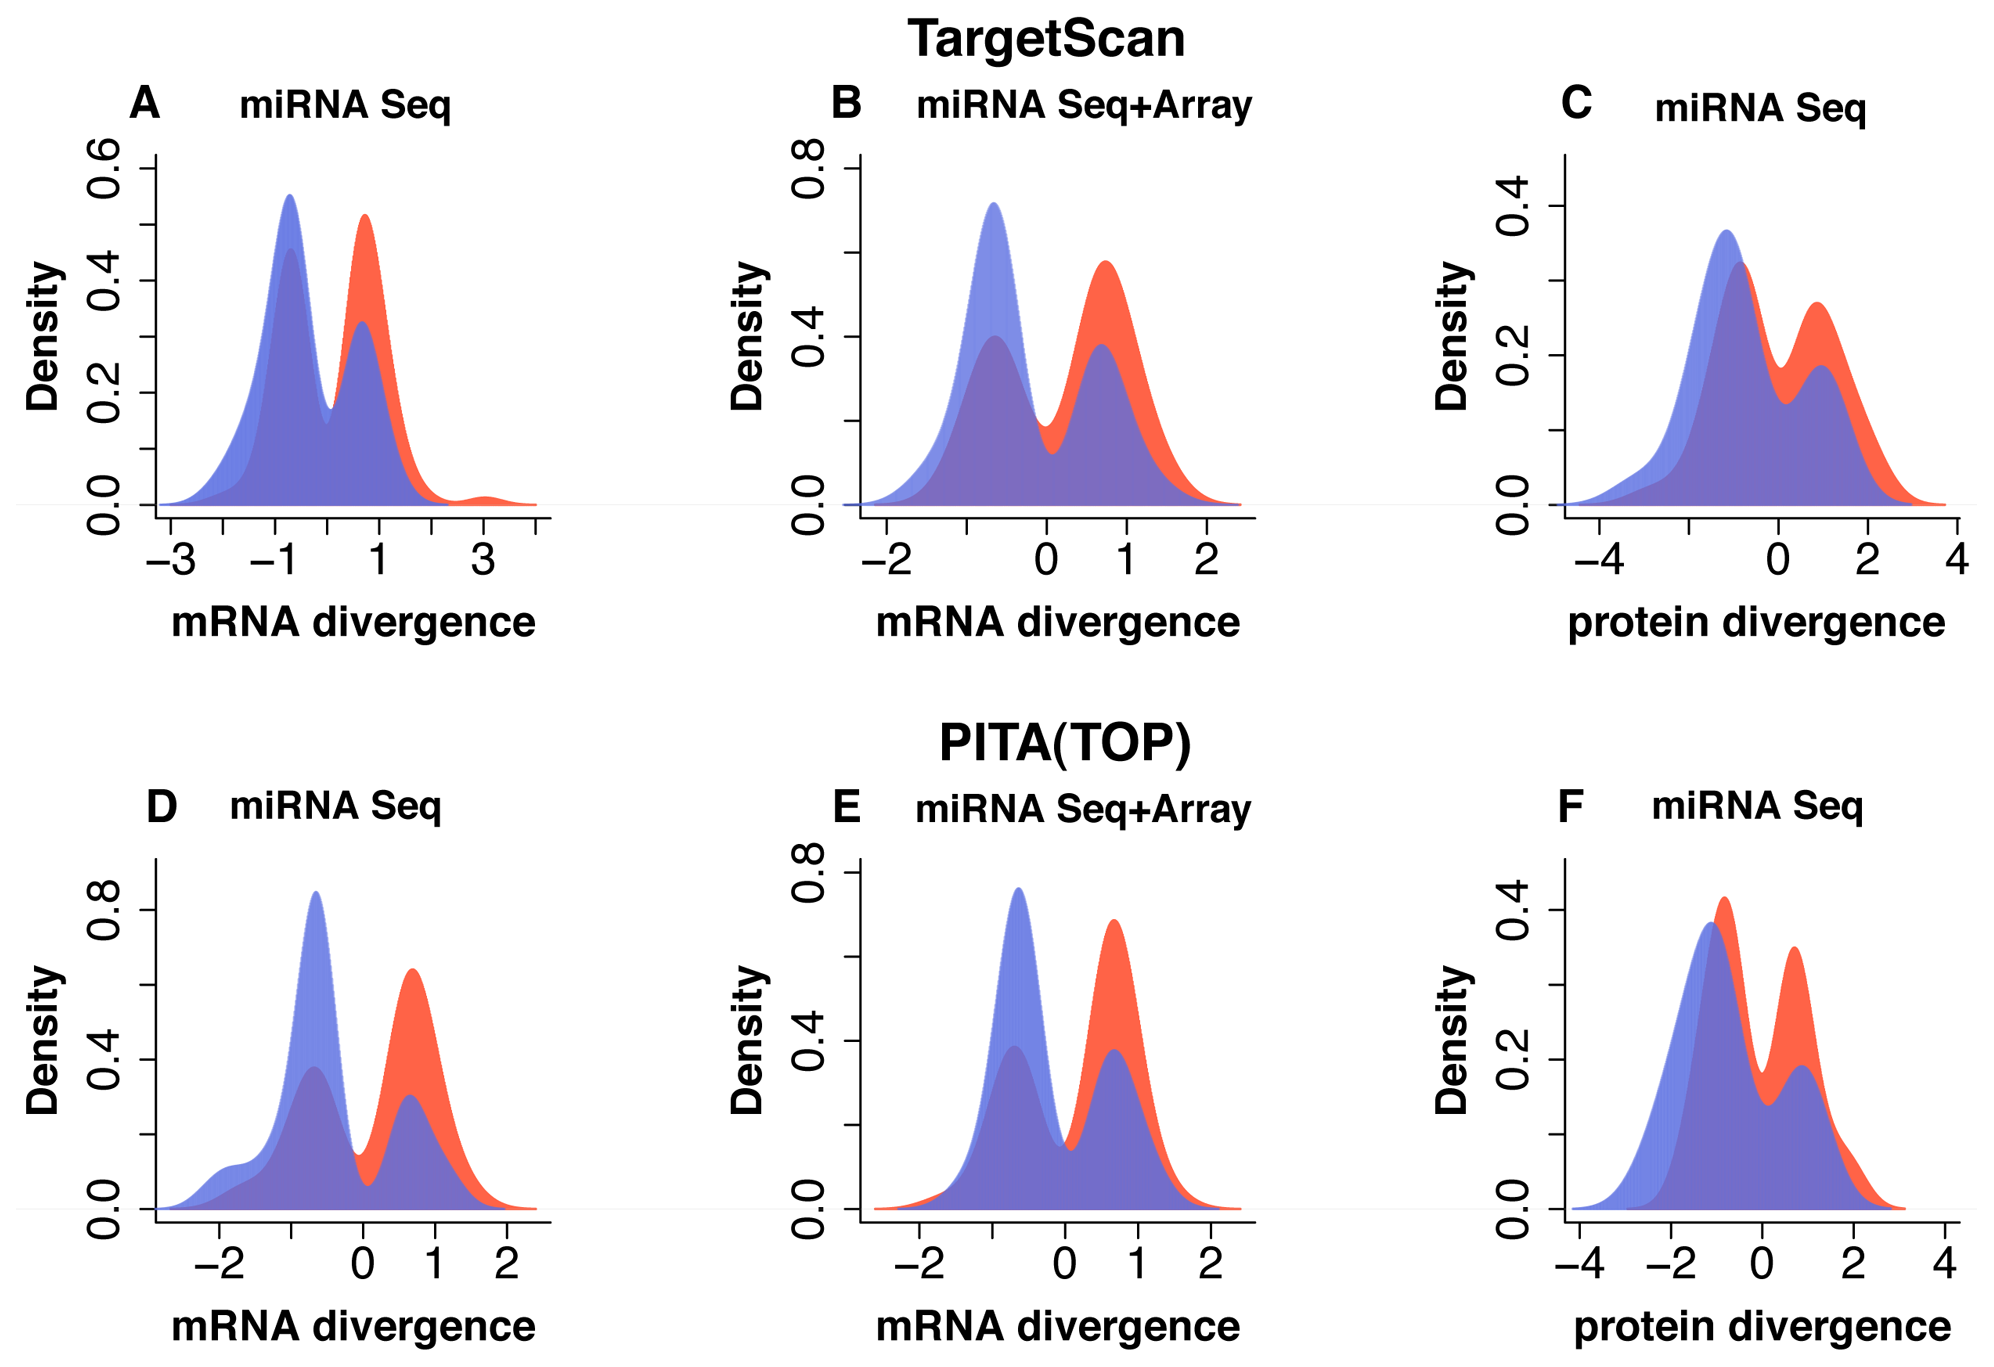 Effect of miRNA expression differences between humans and chimpanzees on mRNA and protein expression in prefrontal cortex.